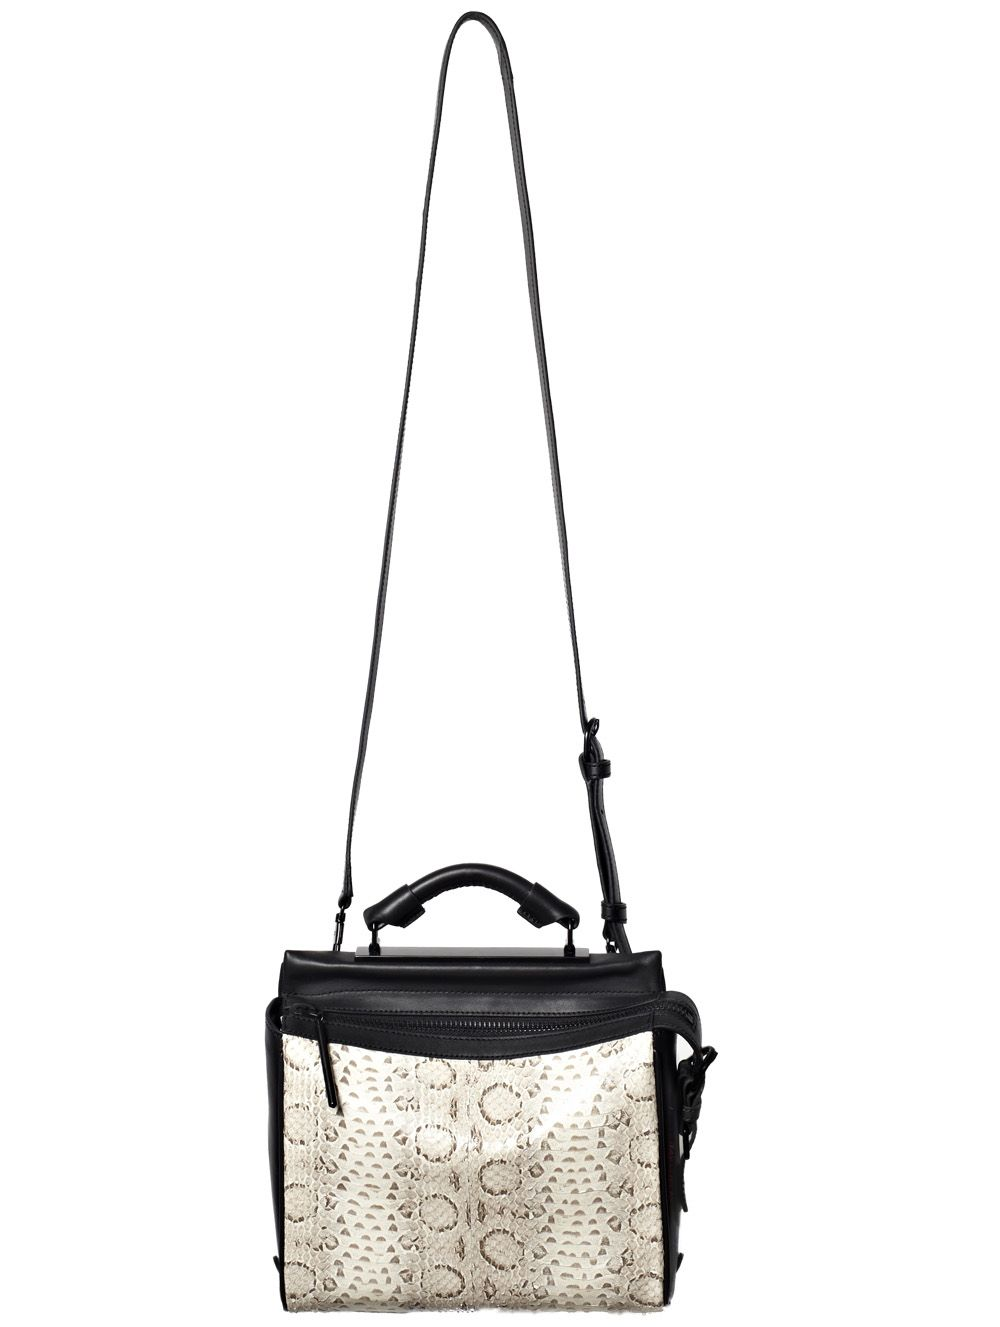 $575.00 on @Keaton Row website, click to see it in action. 3.1 Phillip Lim's Small Ryder Satchel in chic grey snakeskin is perfect for the 9-5 workweek and beyond | Leather bag featuring single top handle | Top zipper closure | Detachable cross-body strap | Front snake leather panel | Dust bag included.   60% Leather, 40% Snake leather